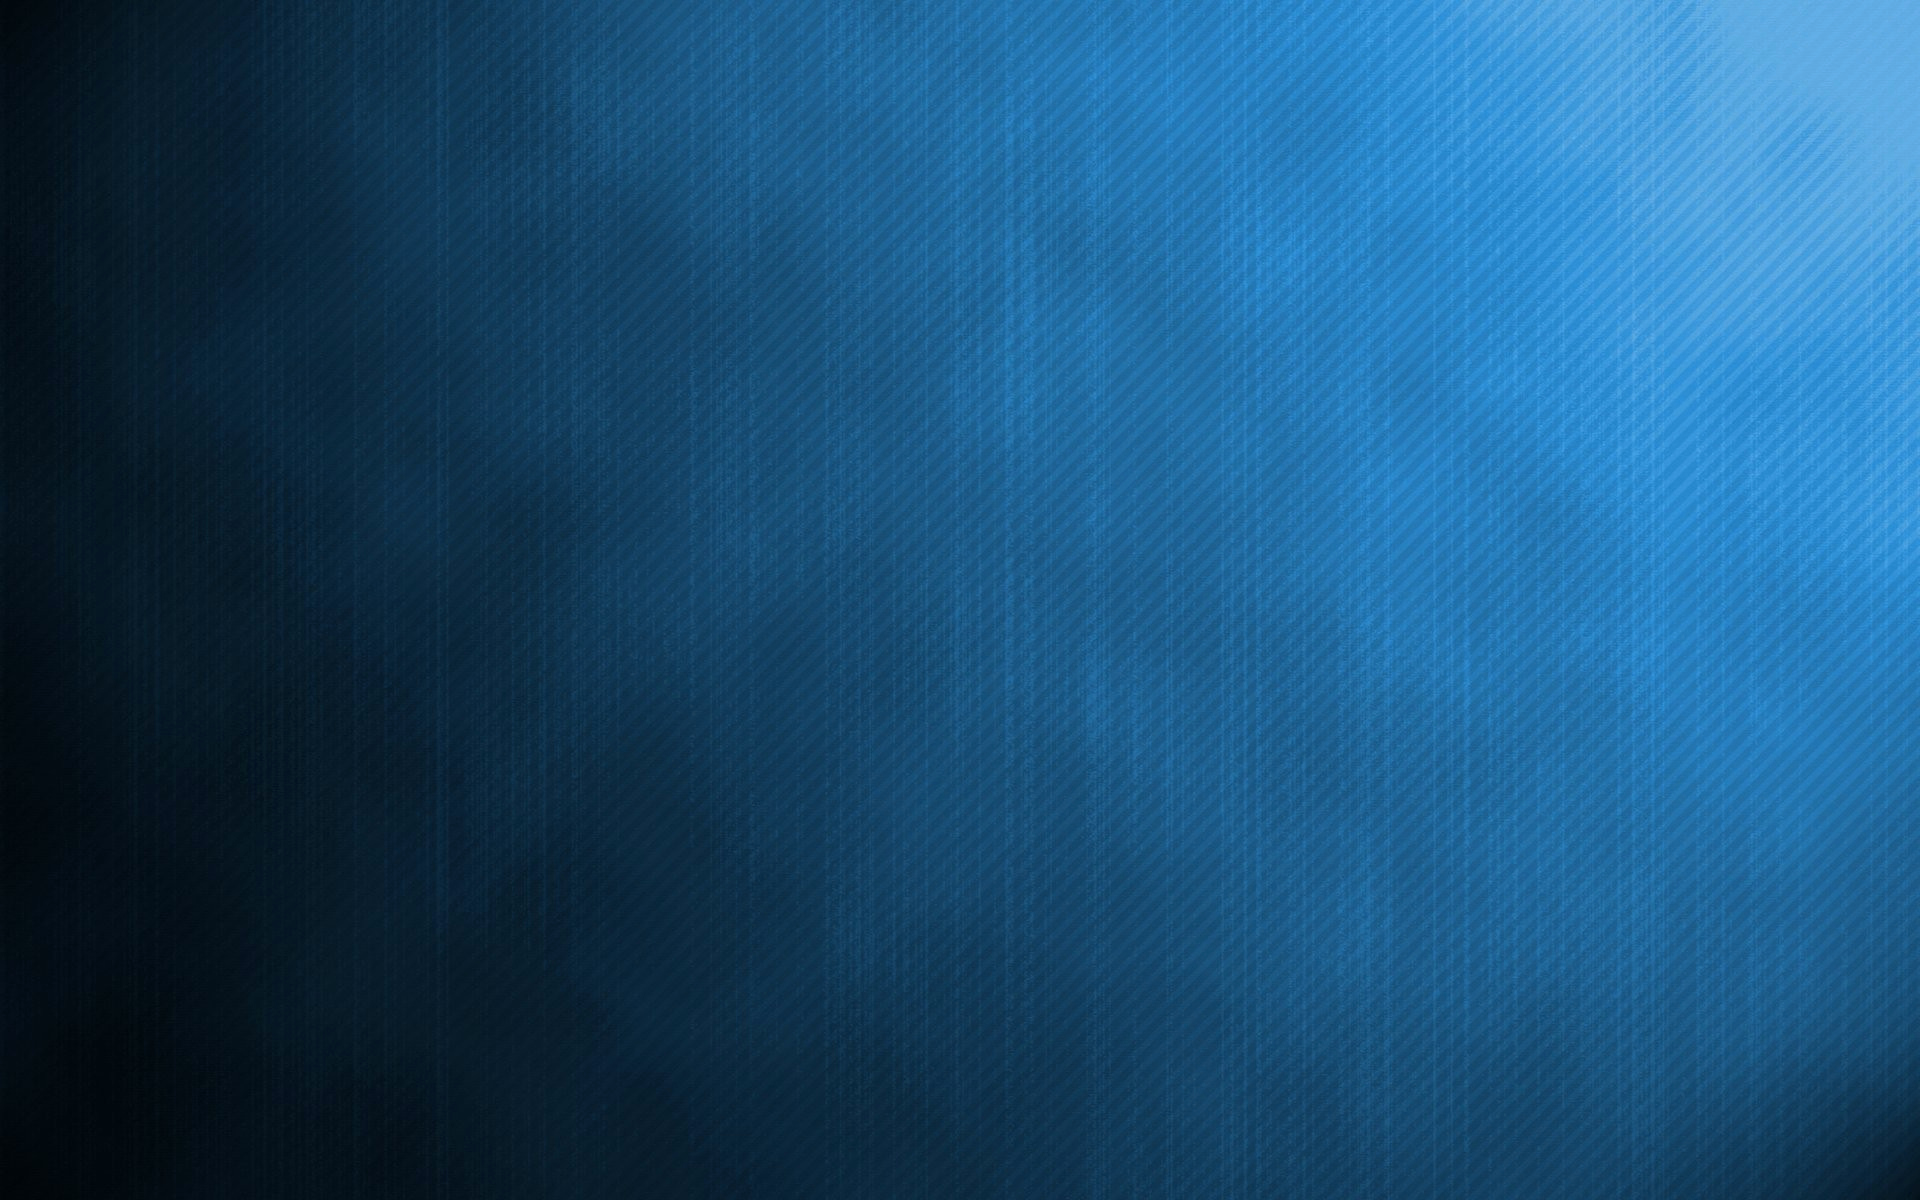 Powerpoint Backgrounds and 5 Power Point Backgrounds ·① Download Free Hd Wallpapers